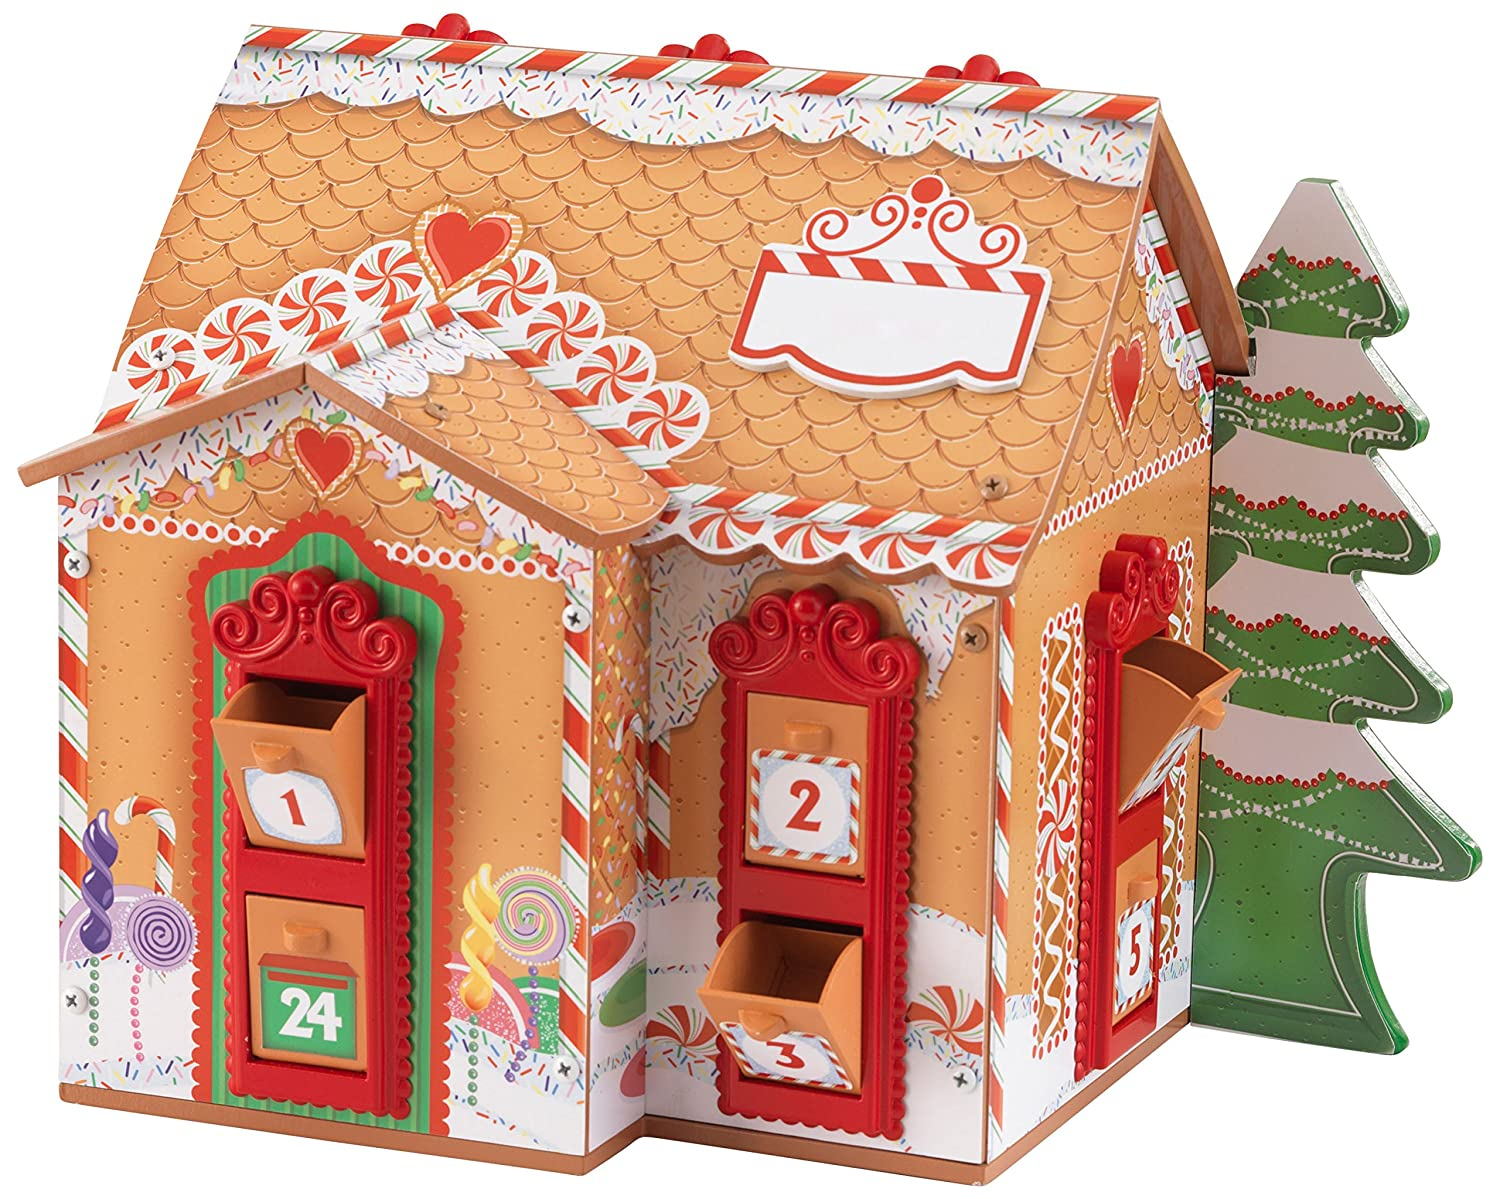 KidKraft Wooden Advent Calendar KIDKRAFT (DropShip) 62908